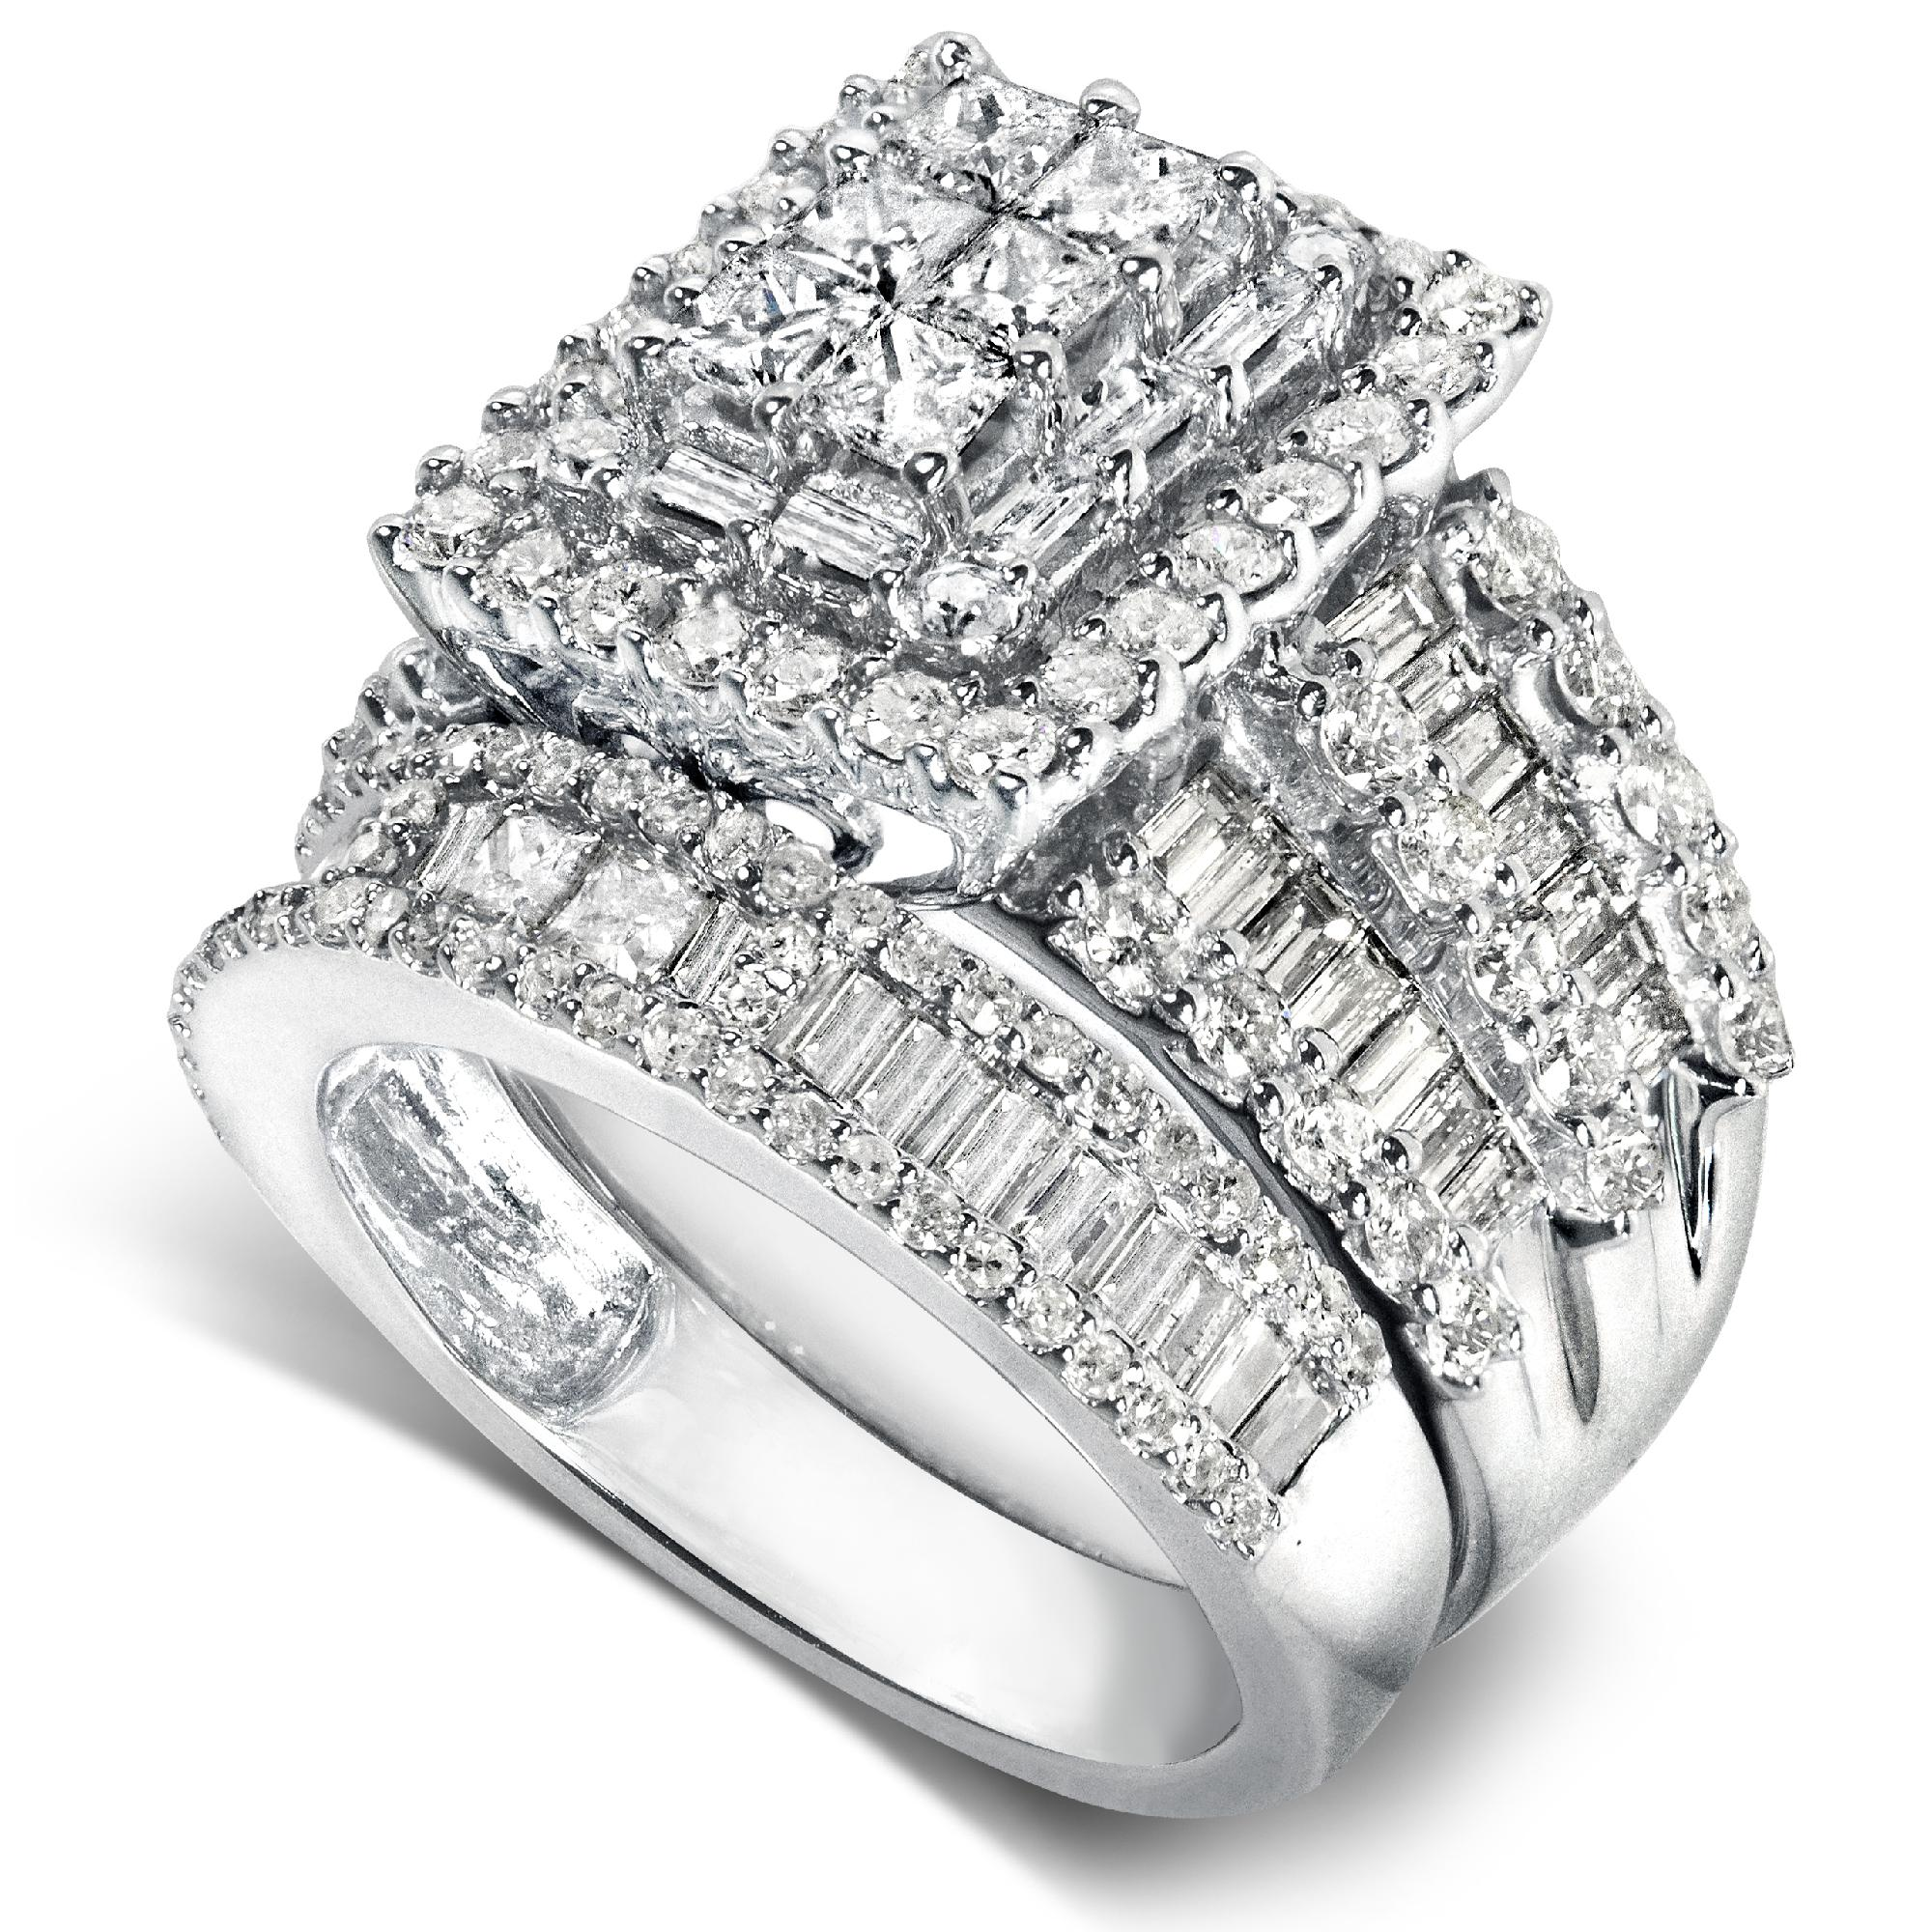 p P sears wedding rings Diamond Me Diamond Engagement Ring and Wedding Band Set 2 4 5 carats ct tw in 14K White Gold Jewelry Rings